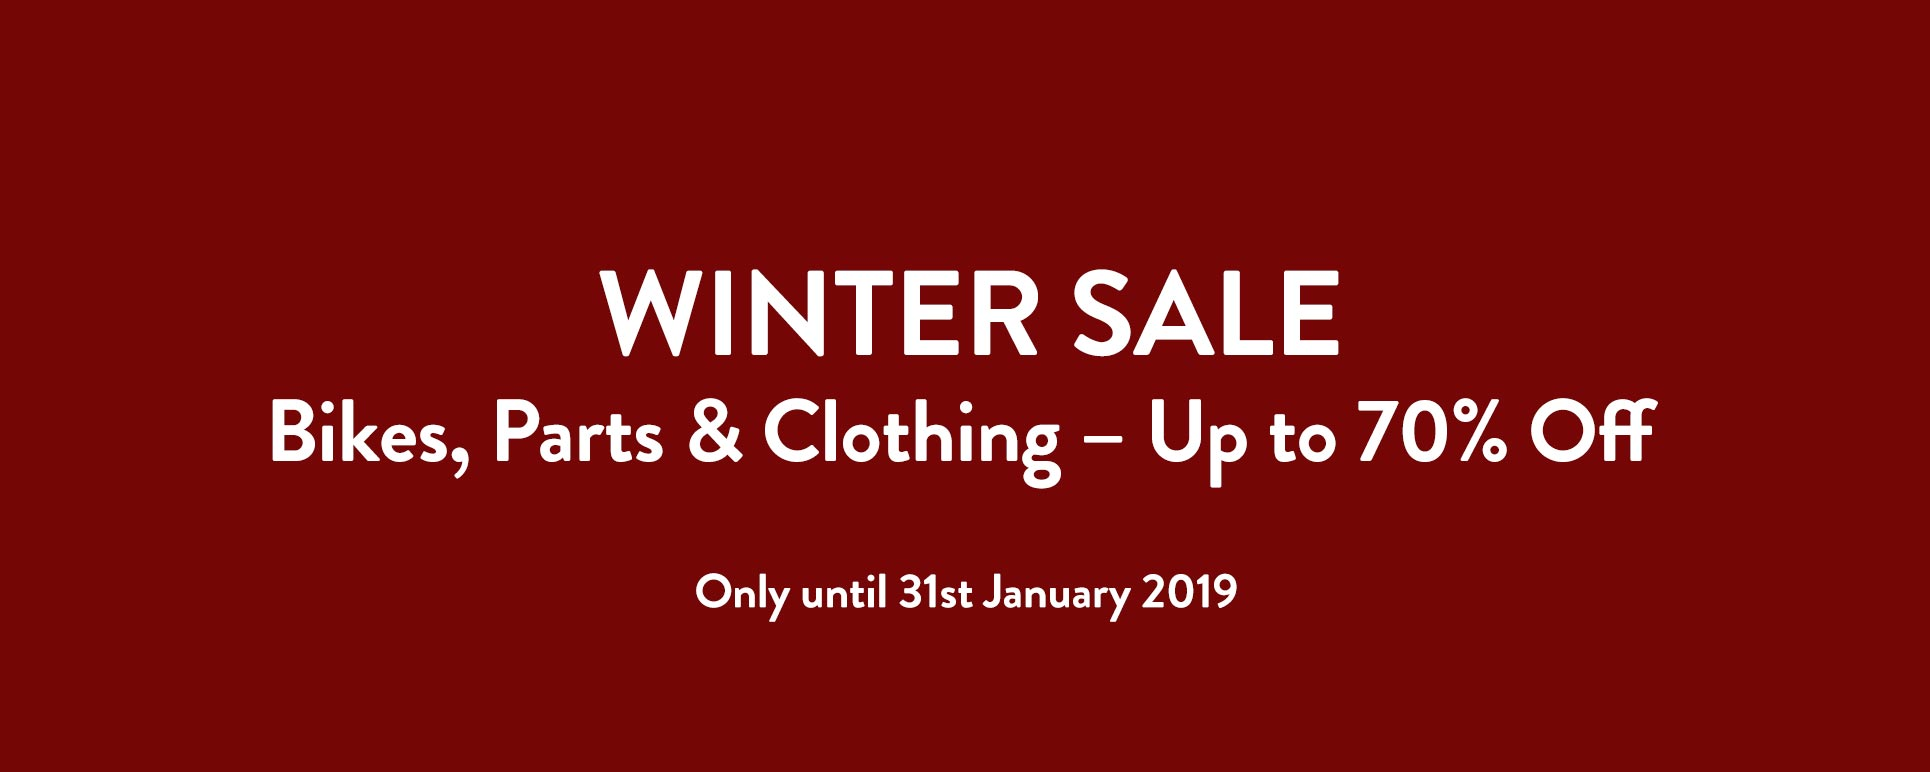 Winter Deals on Clothing & Accessories for Vintage Bicycles